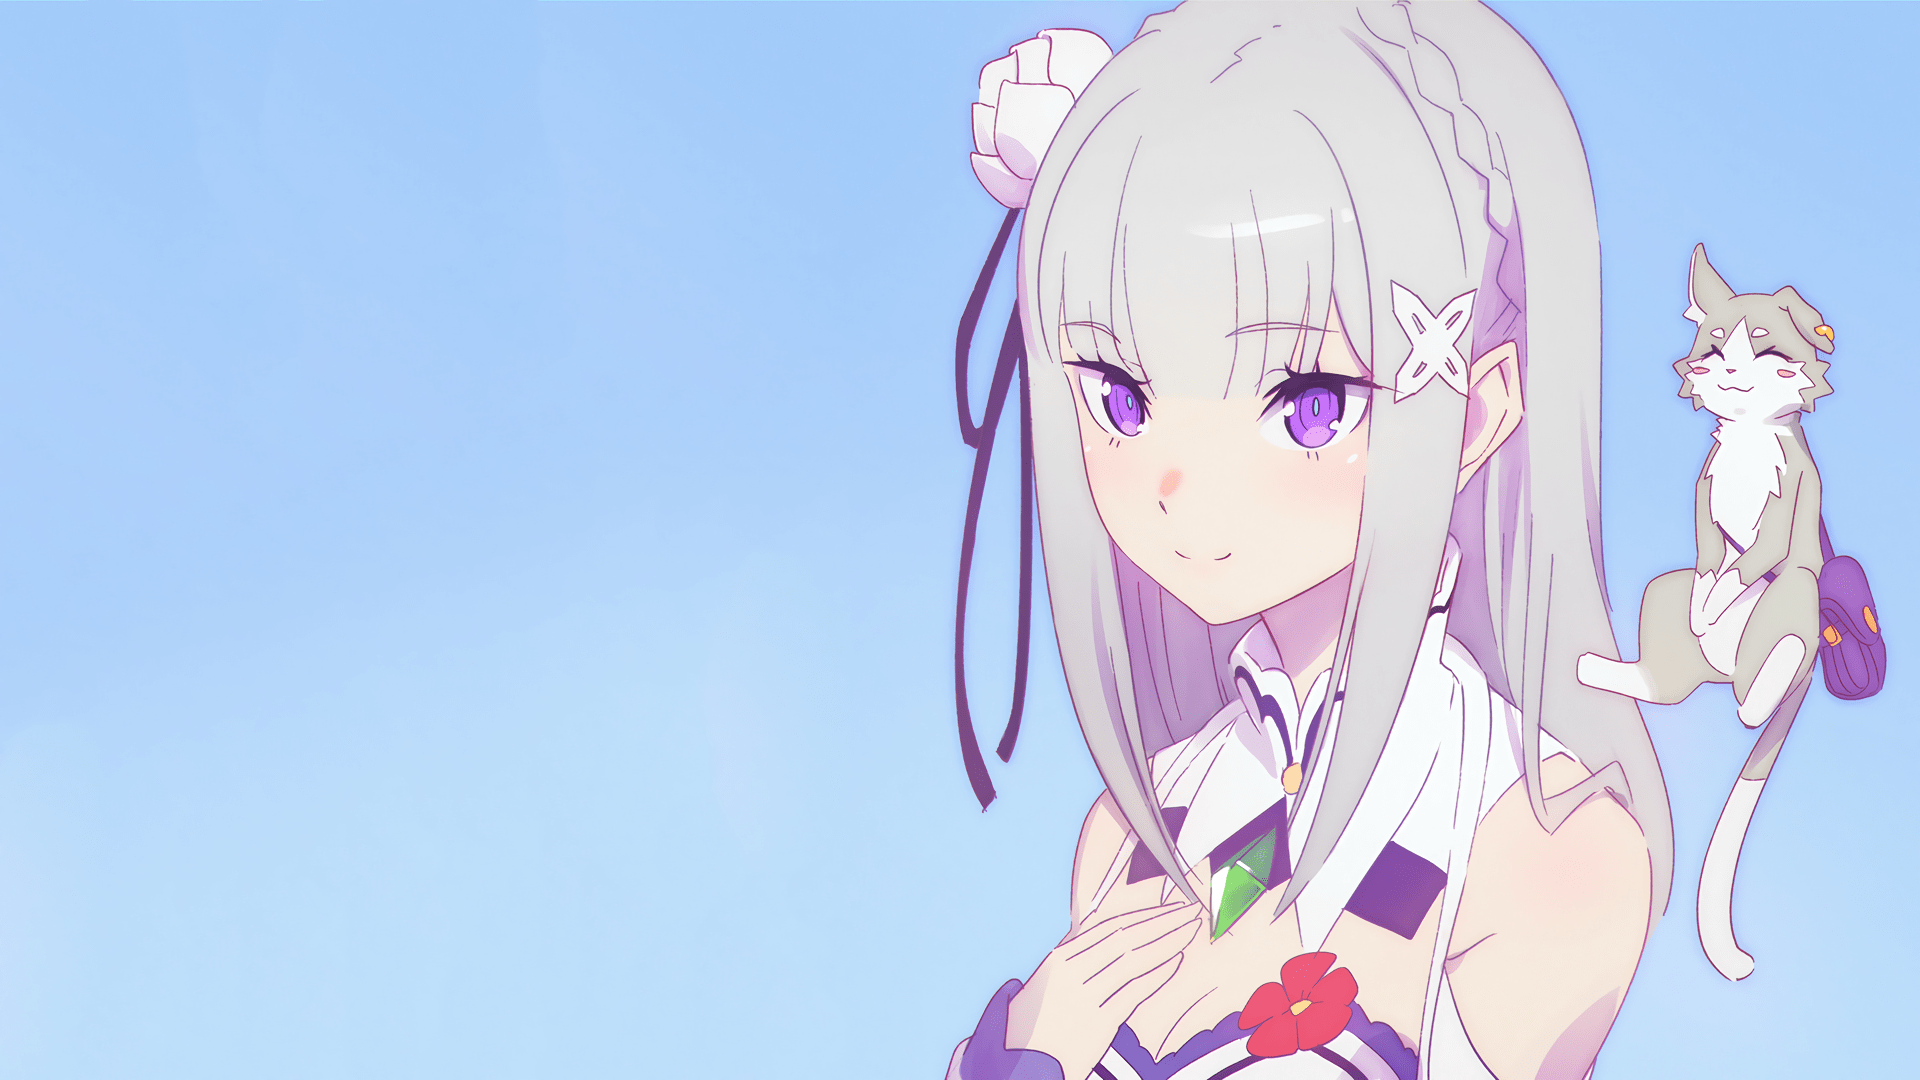 1920x1080p Wallpaper Girl 482 Emilia Re Zero Hd Wallpapers Backgrounds